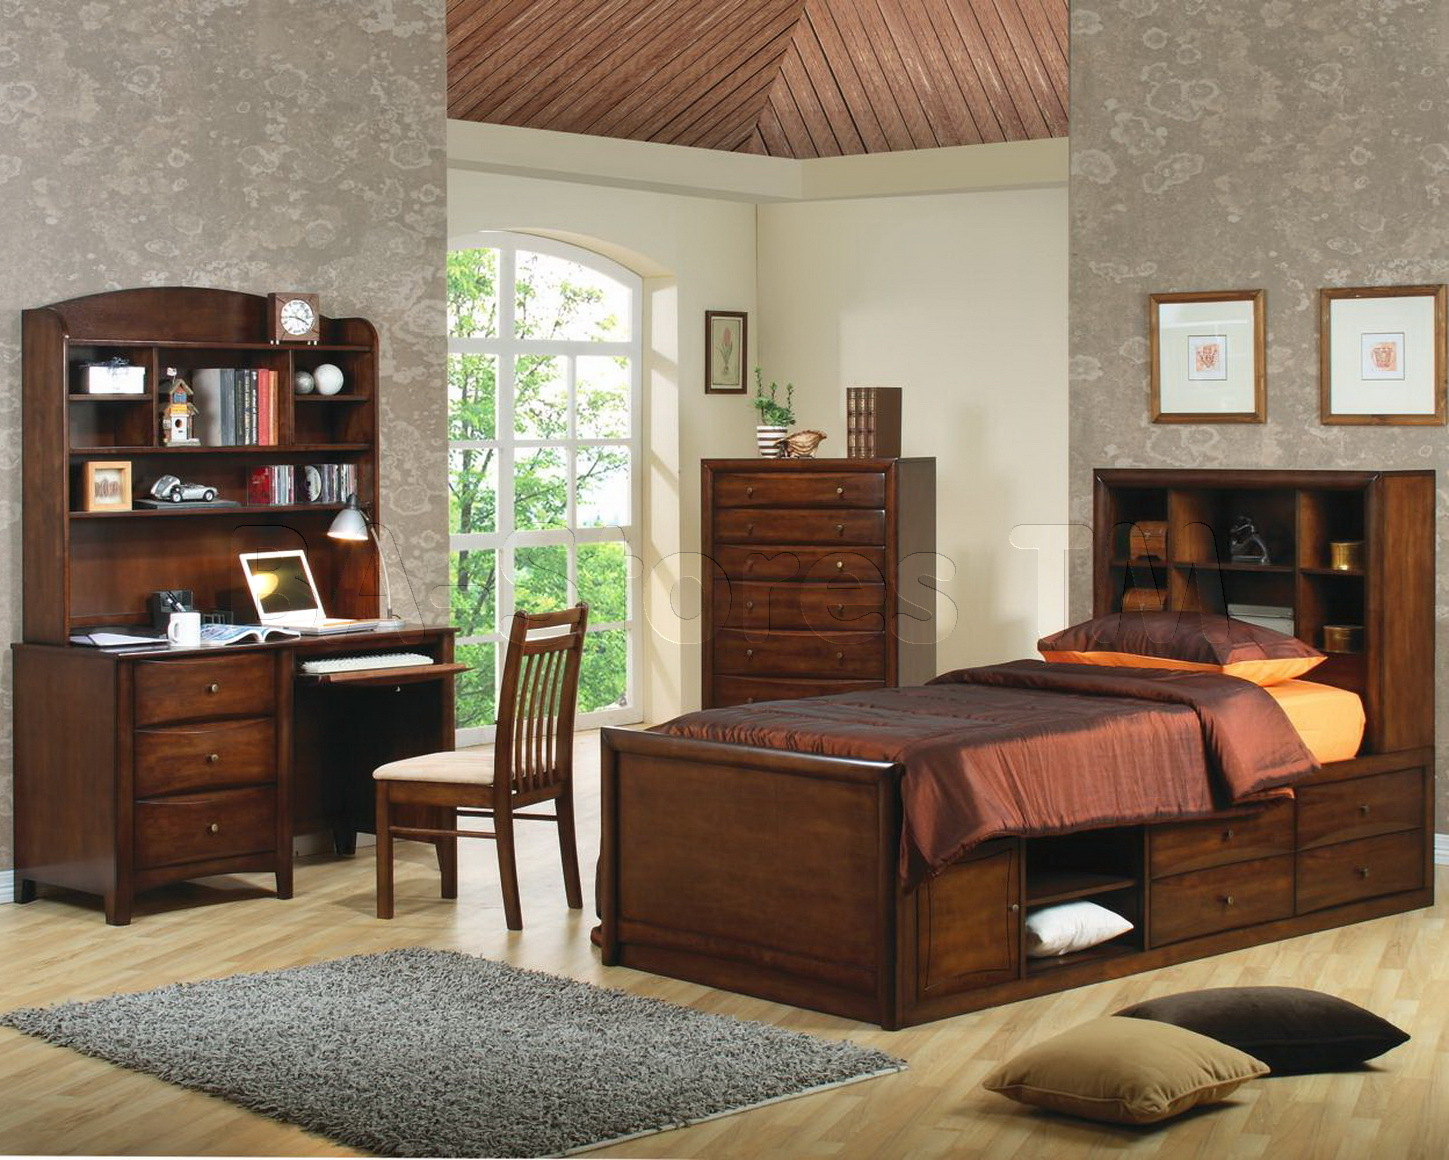 Stunning Youth Bedroom Sets – darbylanefurniture.com